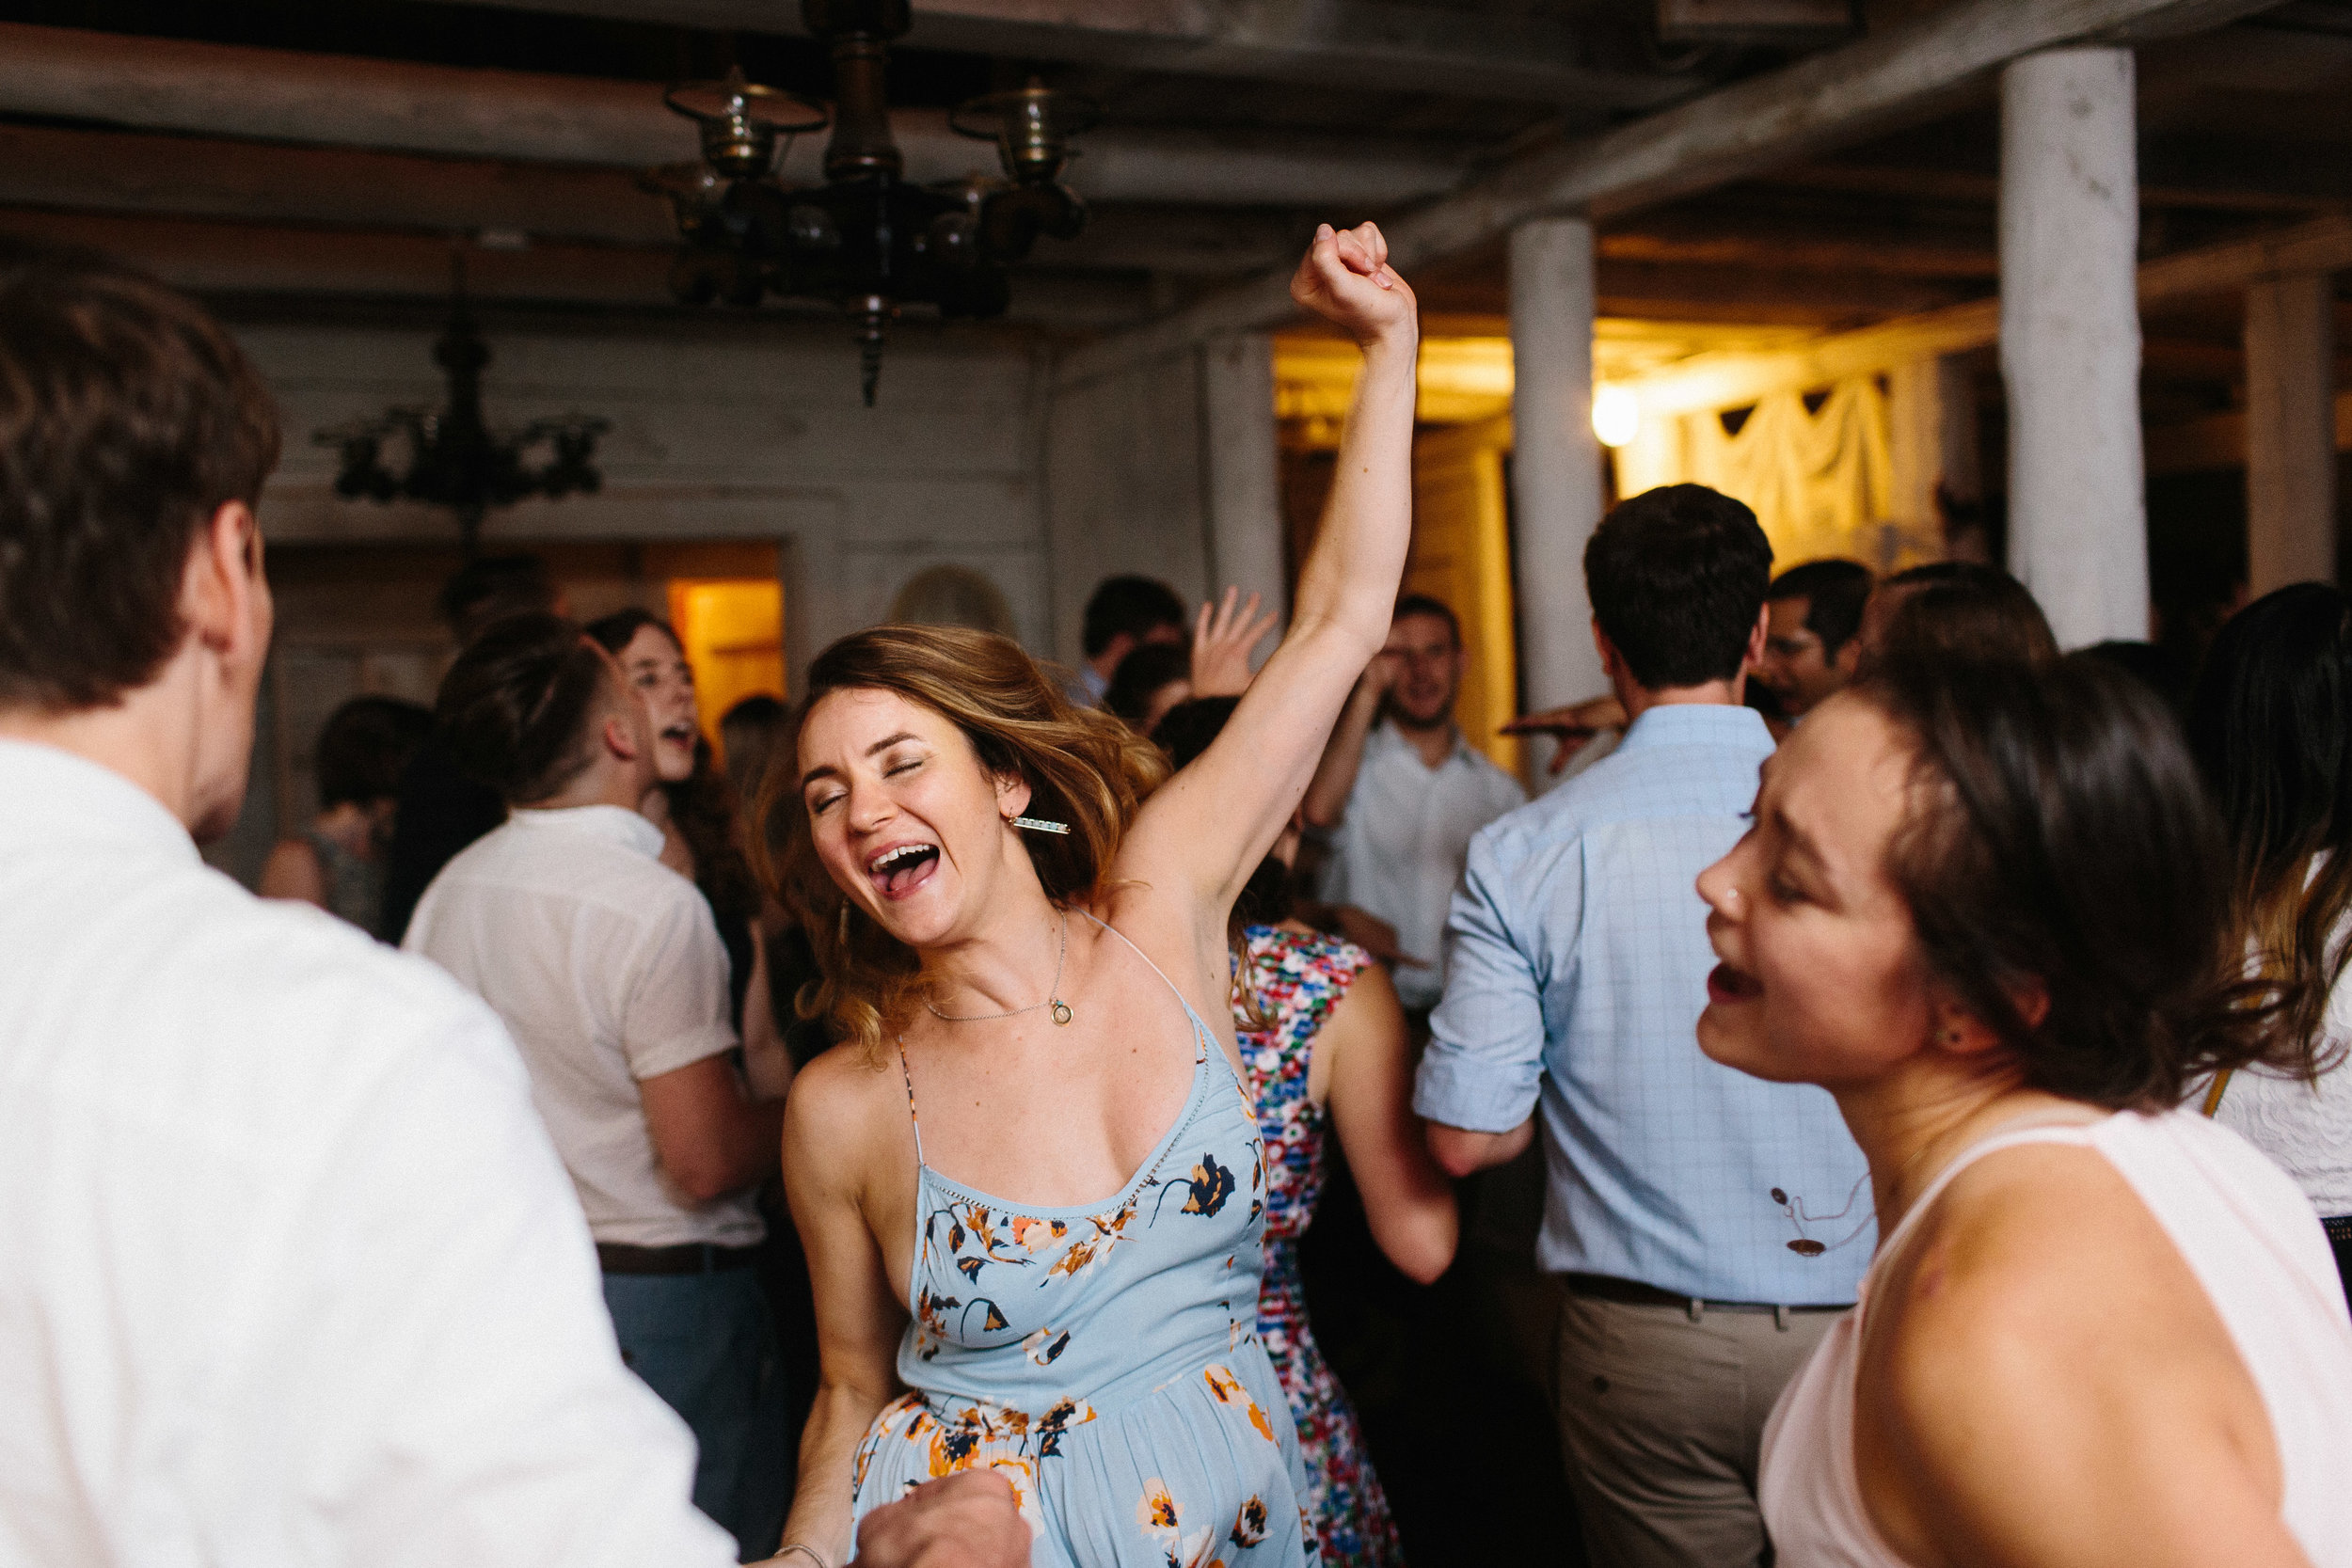 cleveland_georgia_mountain_laurel_farm_natural_classic_timeless_documentary_candid_wedding_emotional_photojournalism_river_west_2113.jpg